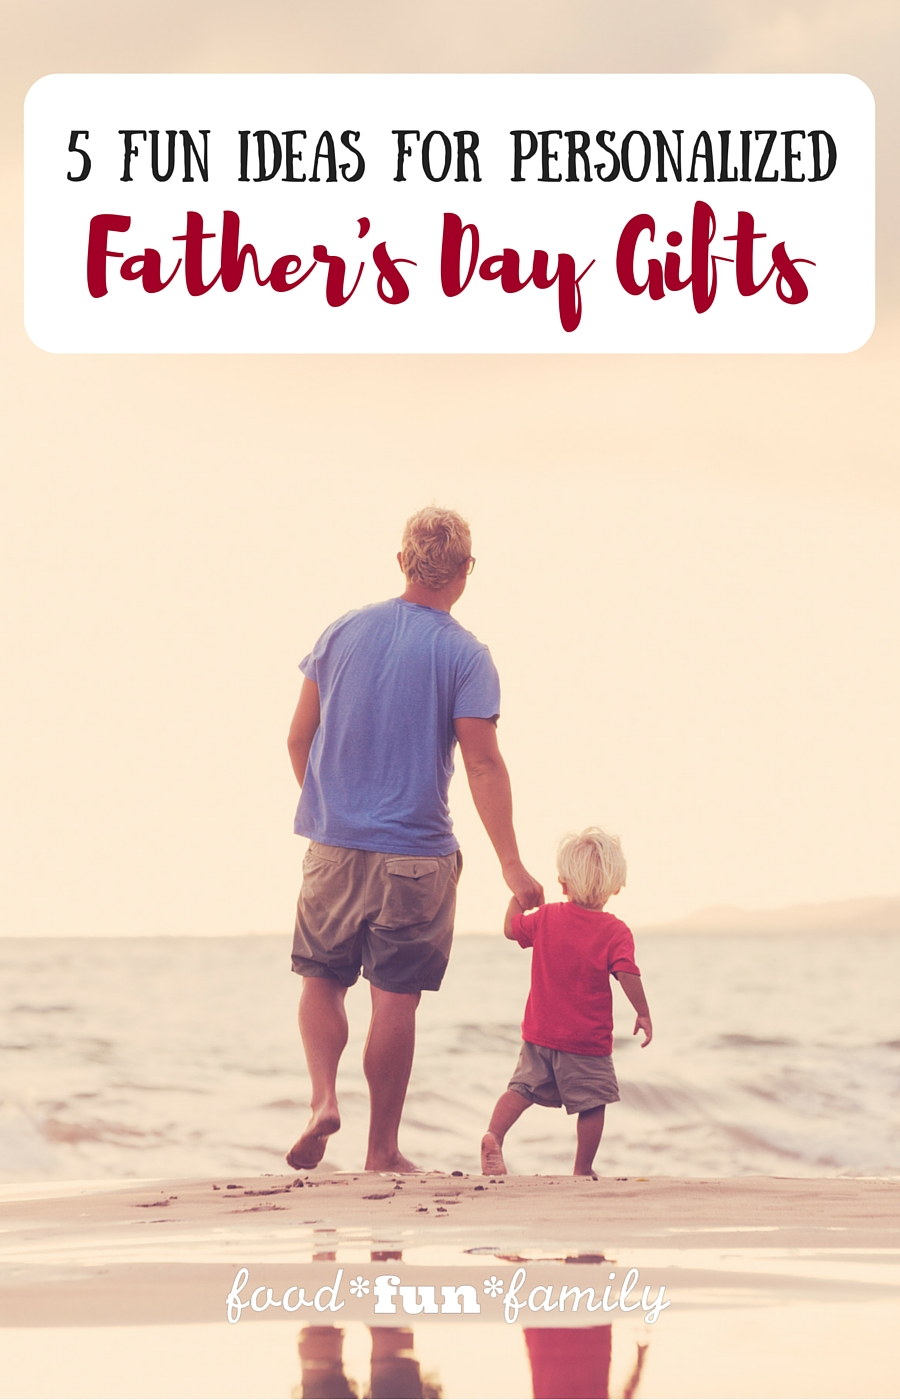 5 Fun Ideas for Personalized Father's Day Gifts